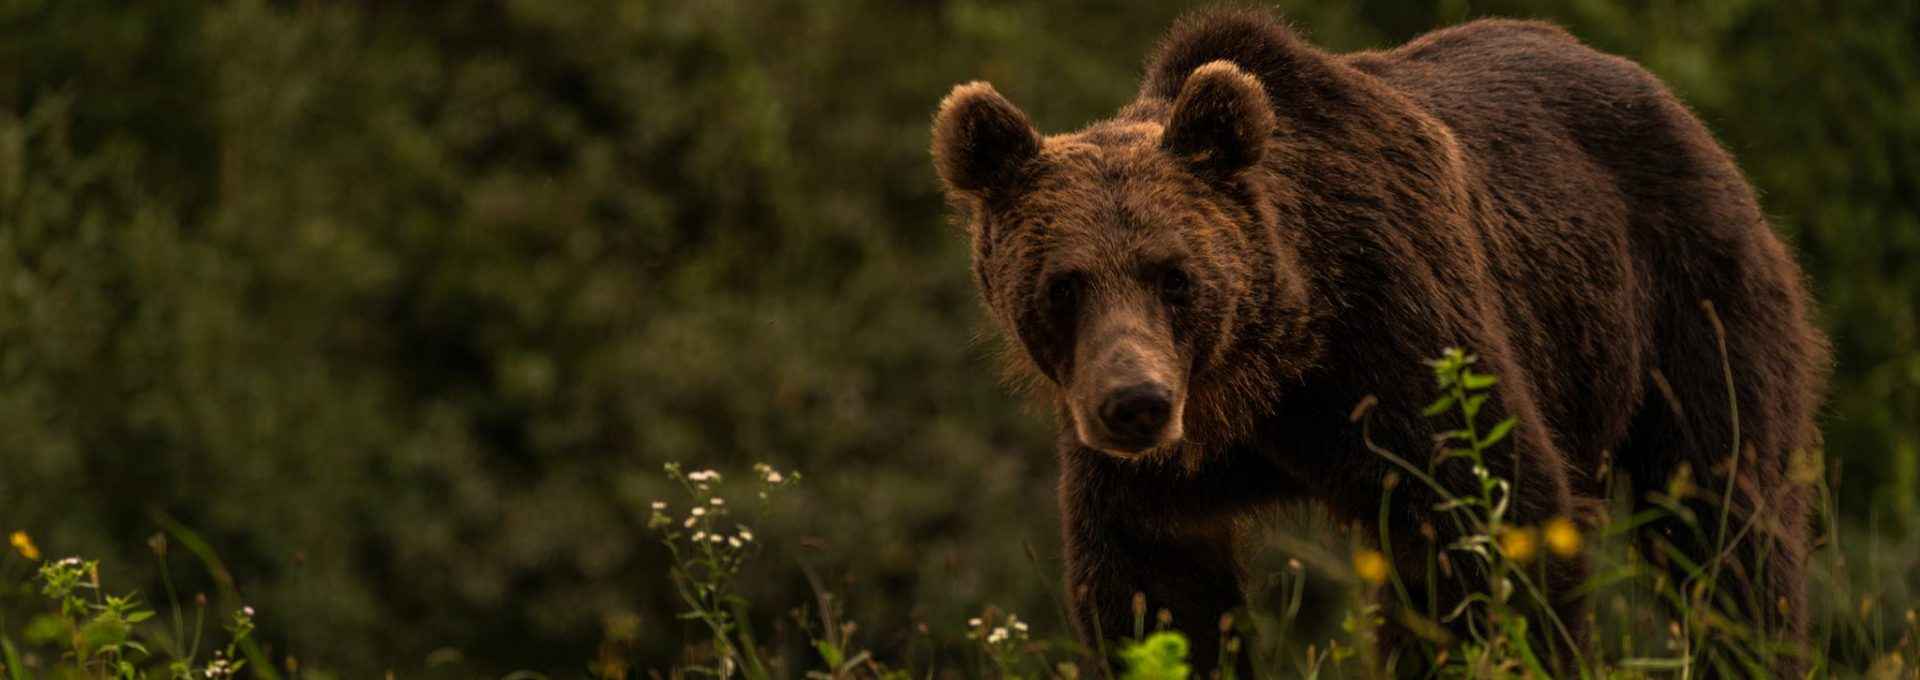 Bear Watching in Romania